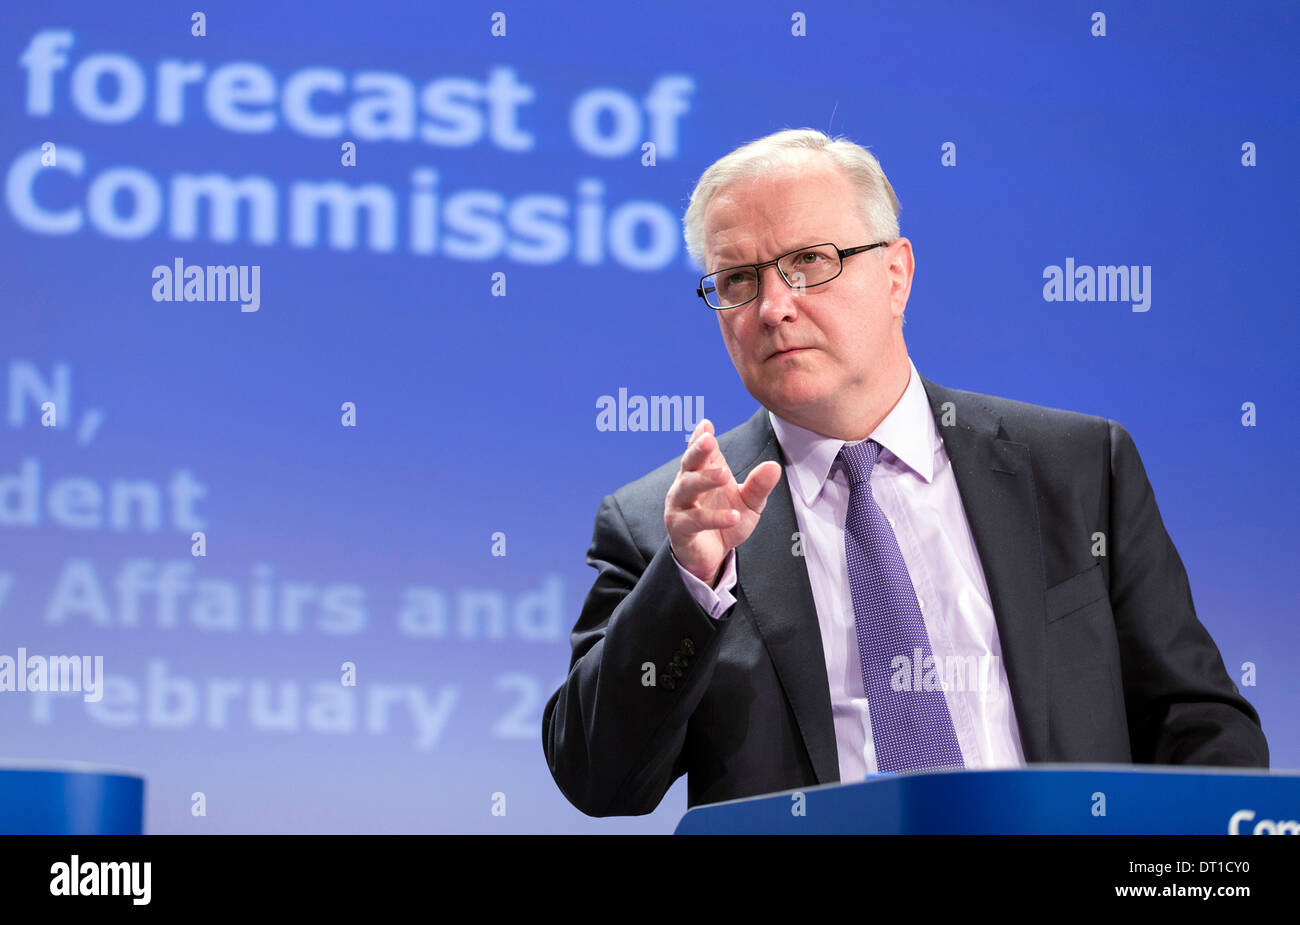 Belgium, Brussels: Olli Rehn talking about the EU economic situation (2013/02/22) - Stock Image